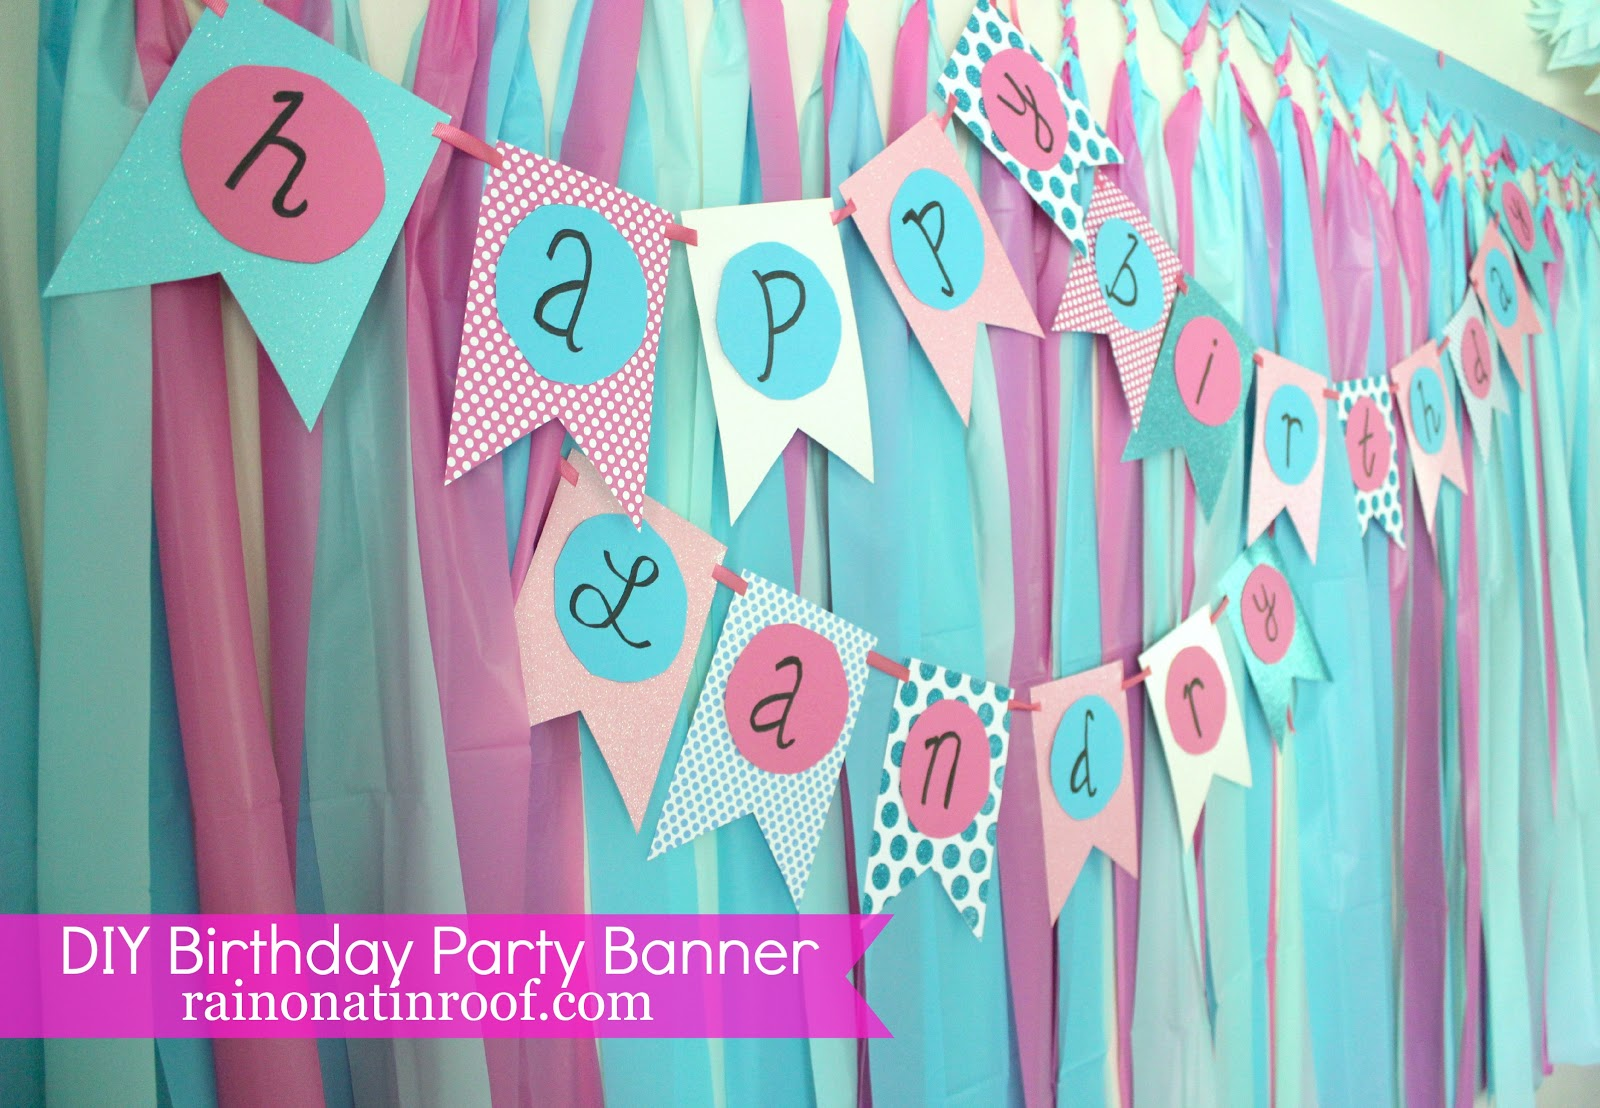 diy party decorations diy party ideas diy party decor party